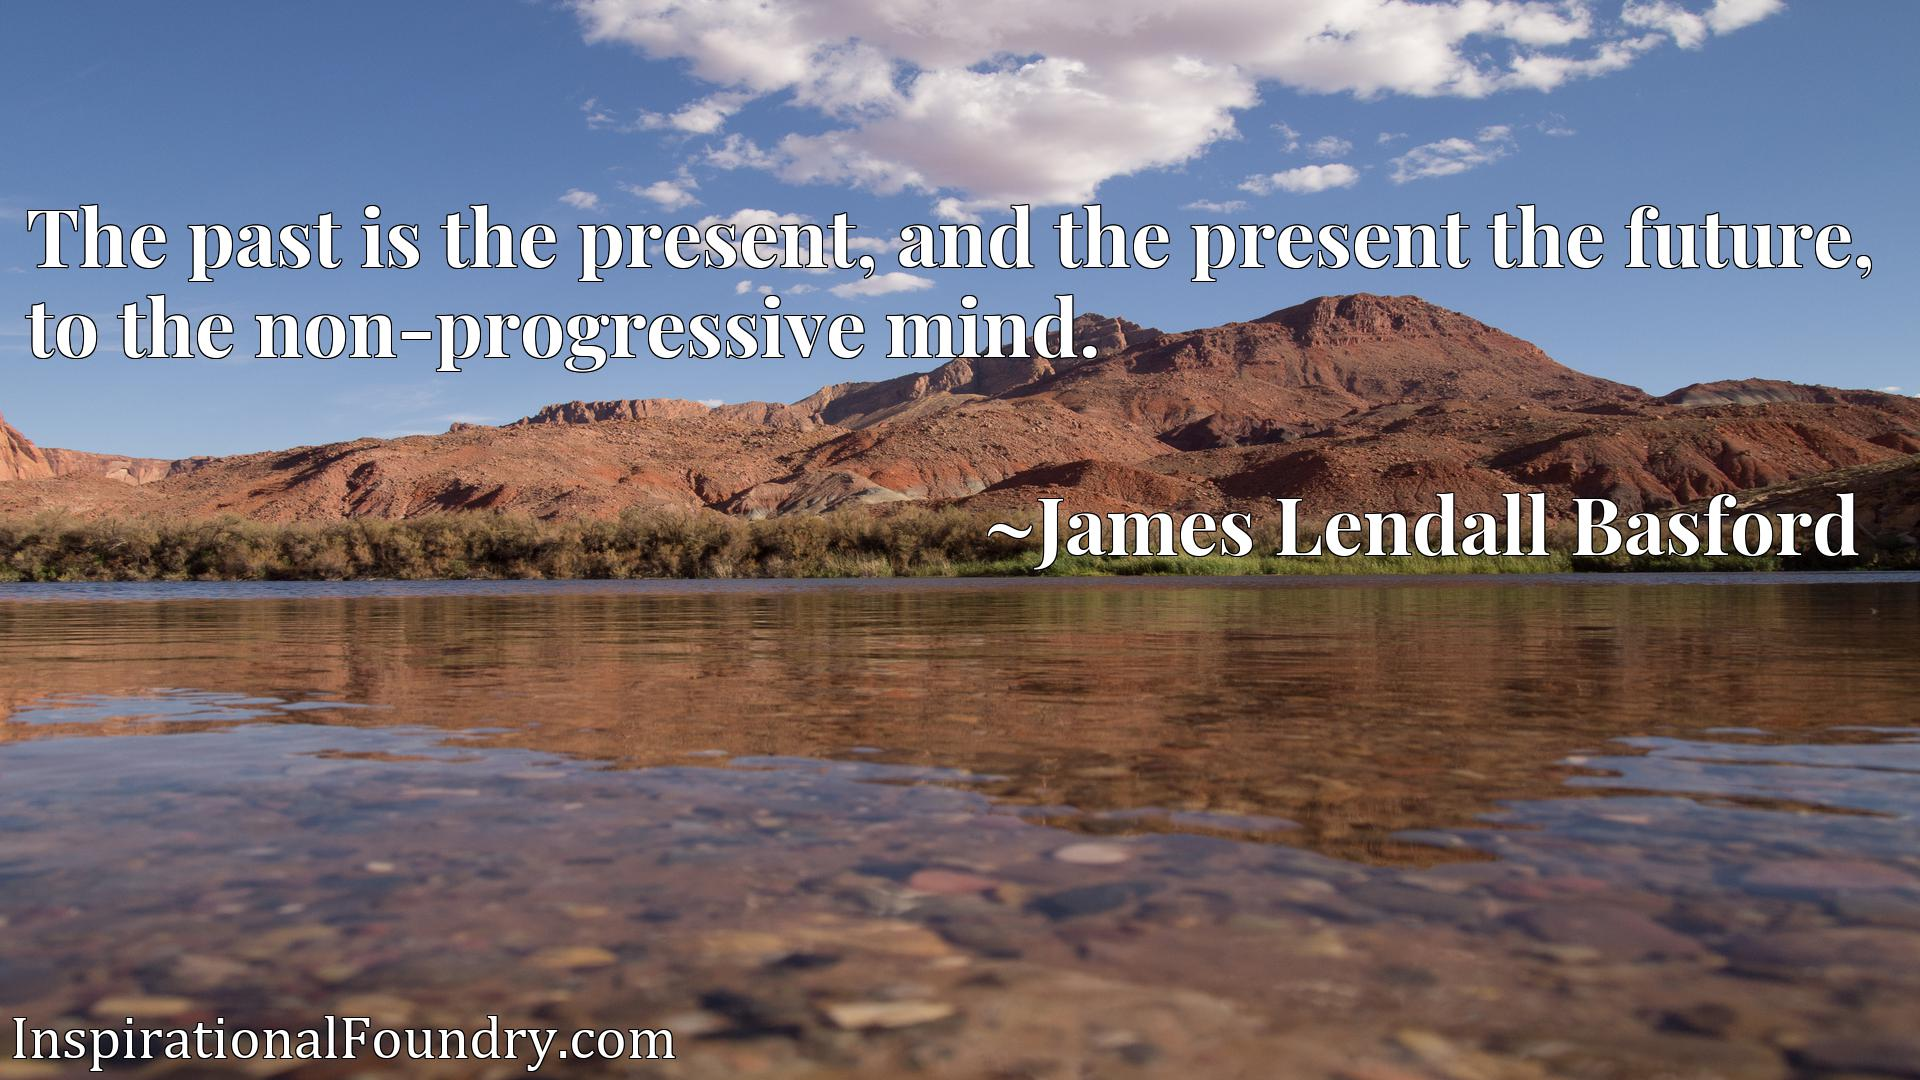 The past is the present, and the present the future, to the non-progressive mind.